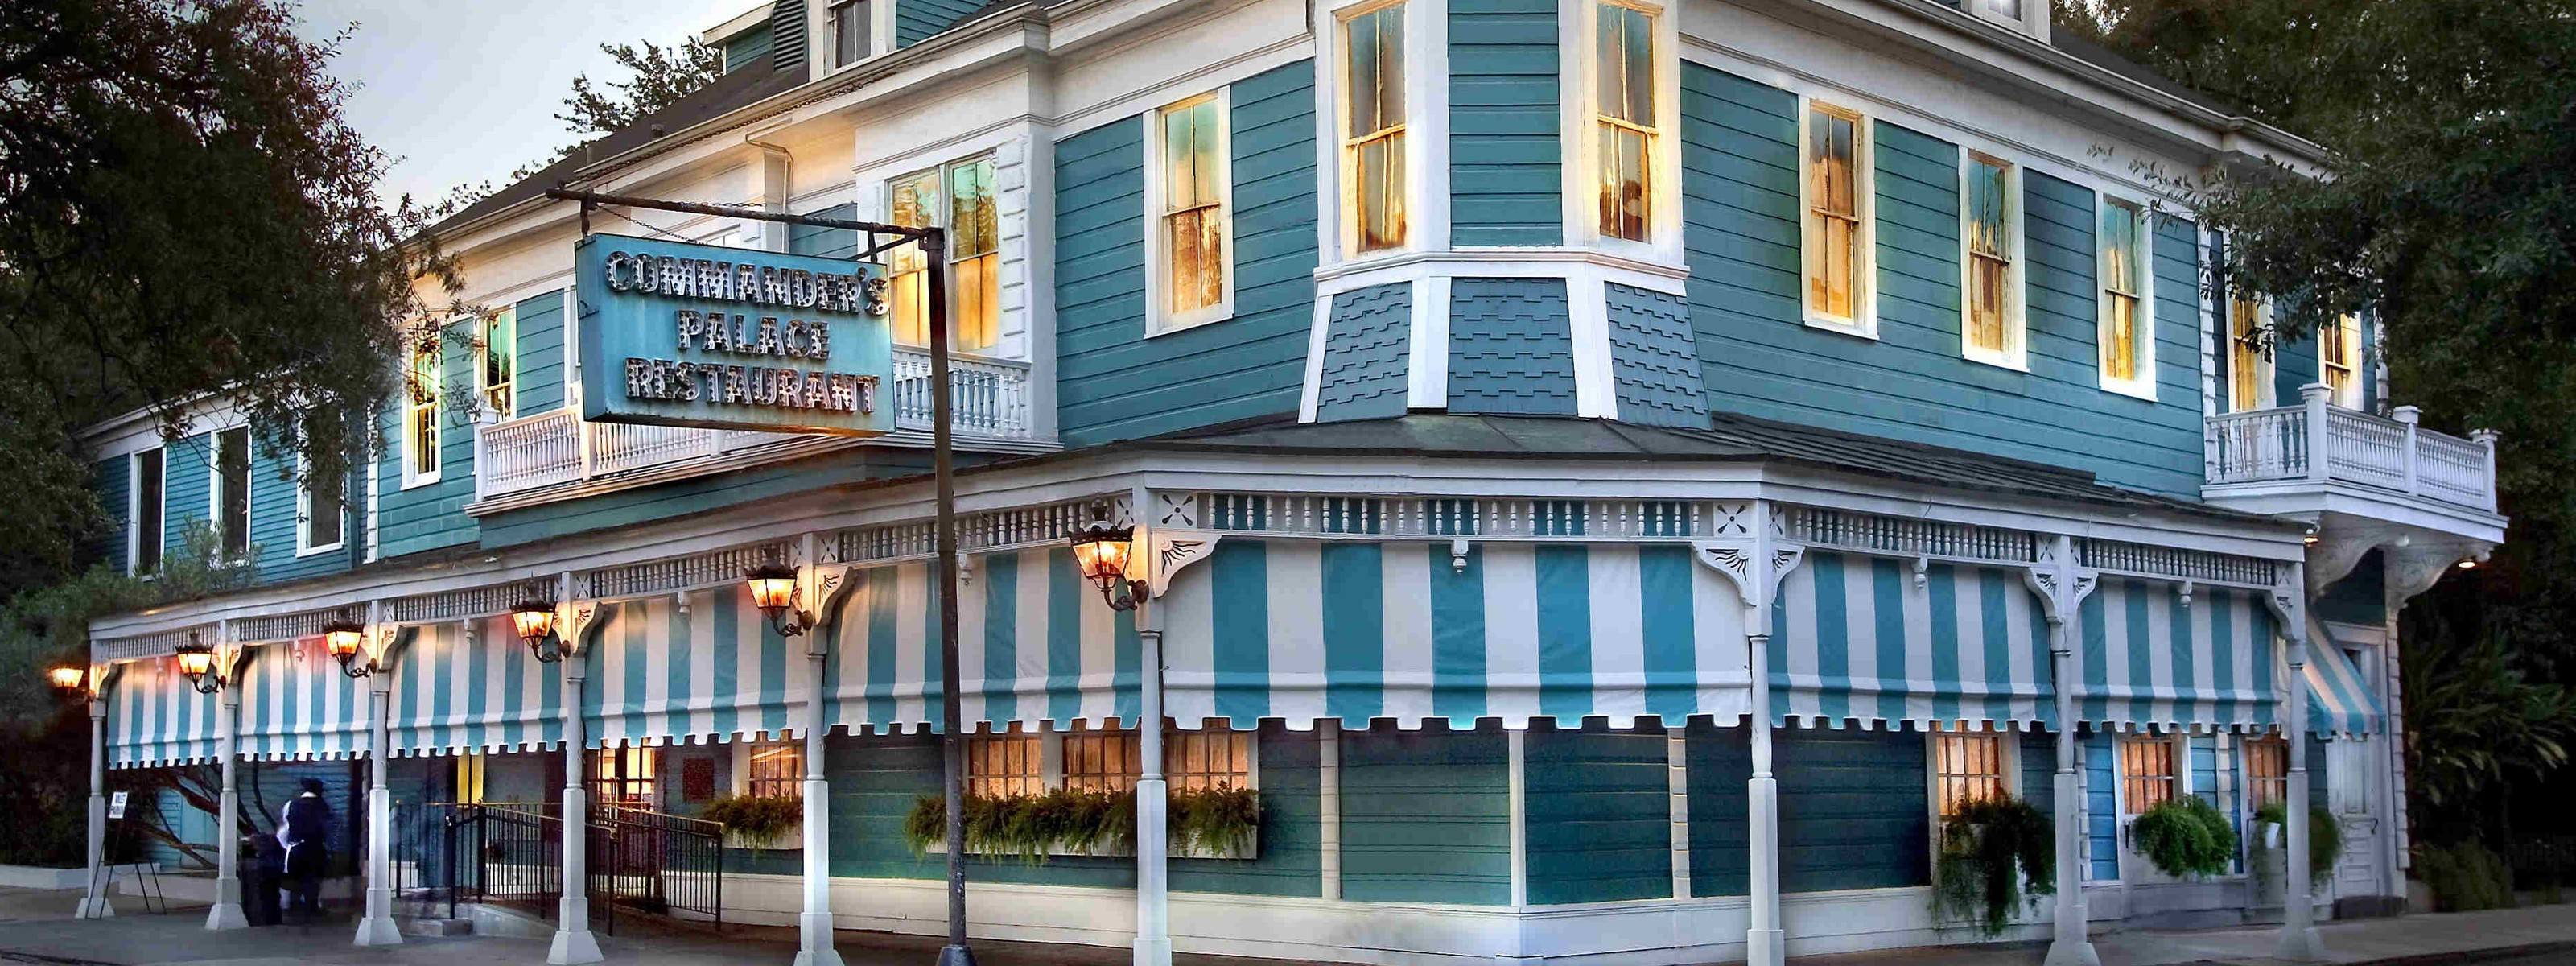 The Best Classic Bars And Restaurants In New Orleans - New Orleans ...